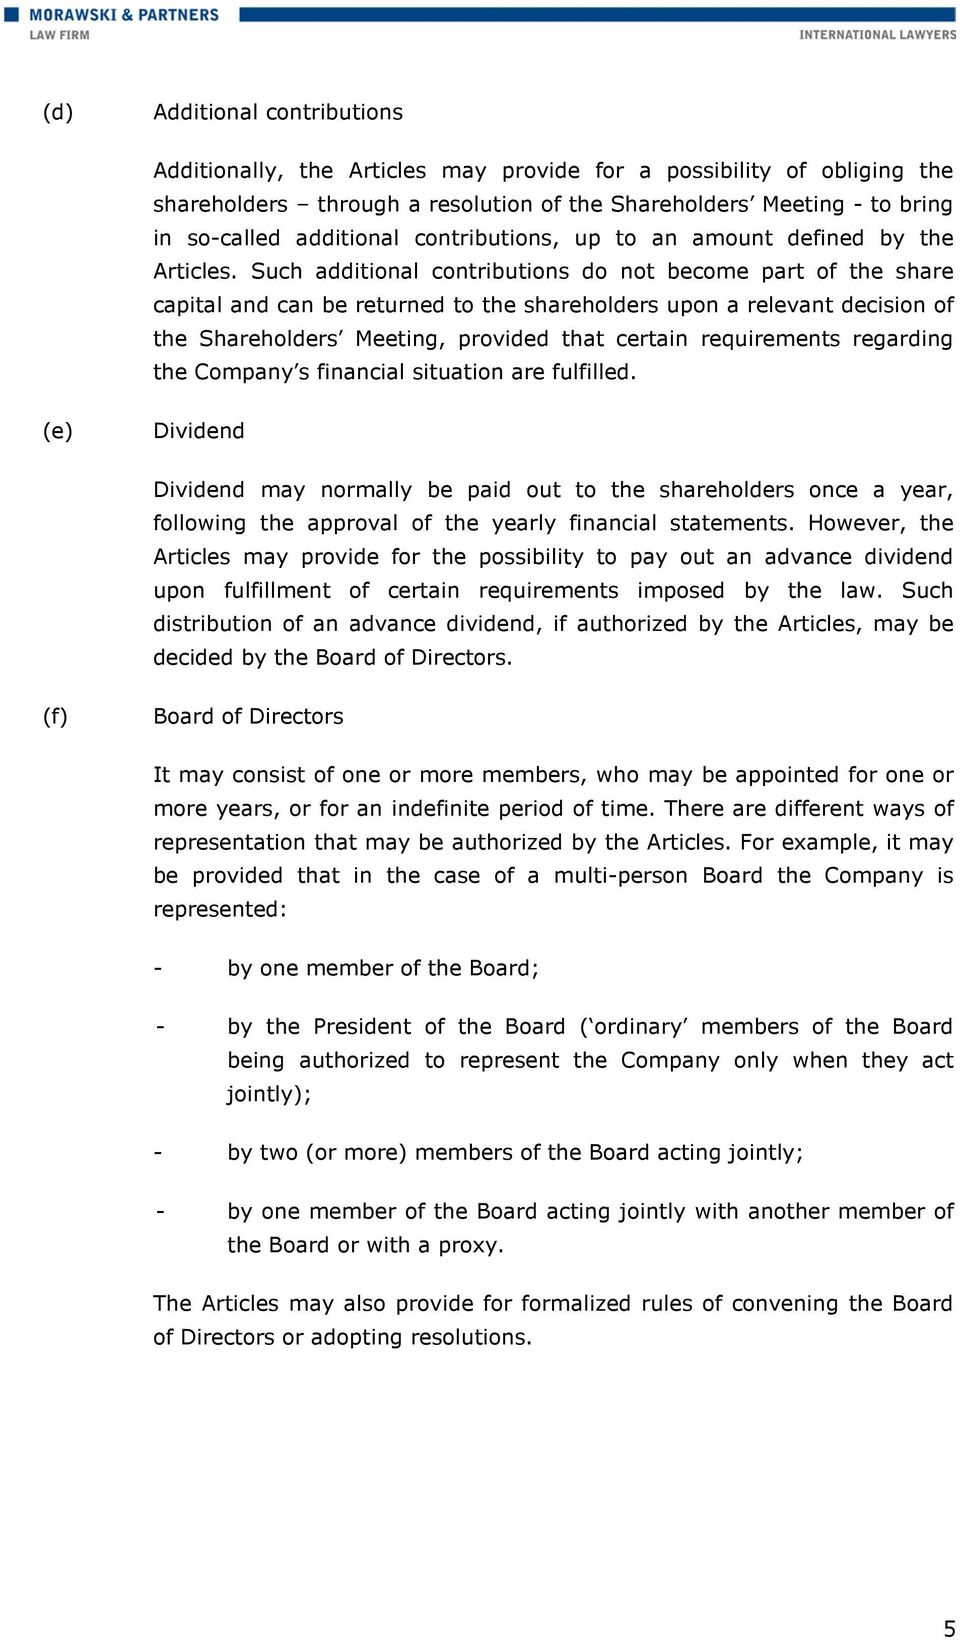 Such additional contributions do not become part of the share capital and can be returned to the shareholders upon a relevant decision of the Shareholders Meeting, provided that certain requirements